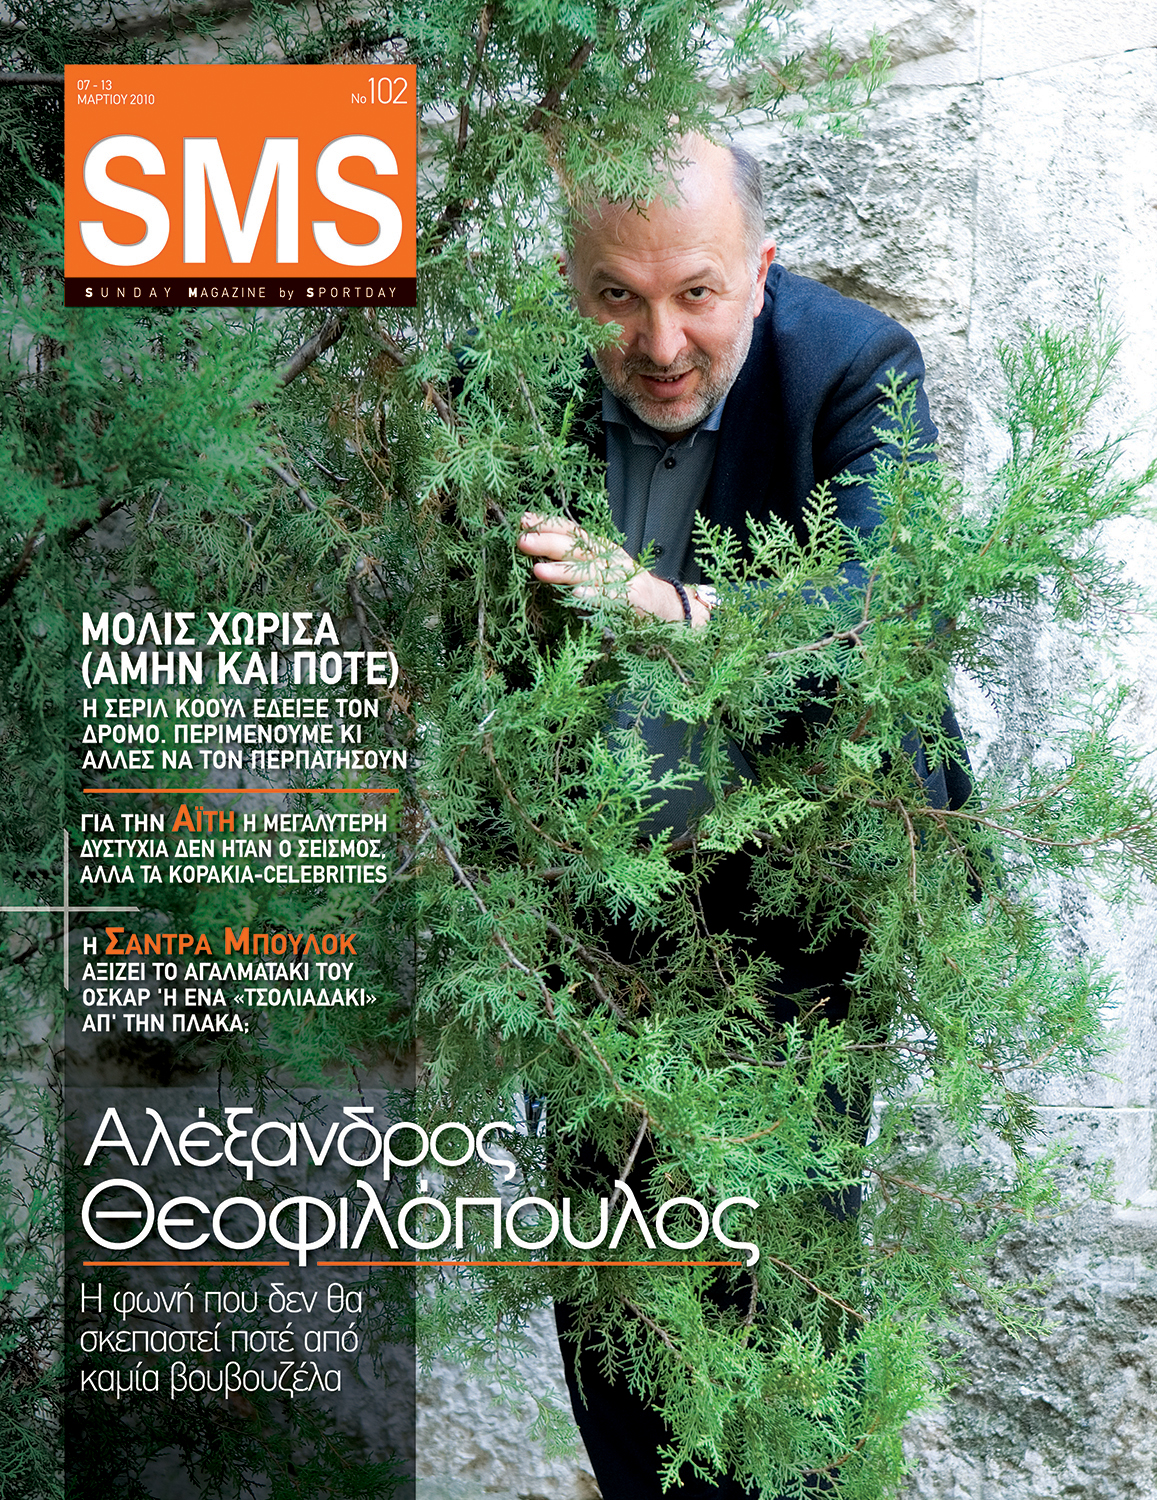 Alexandros Theofilopoulos / journalist / SMS Sportday No 102